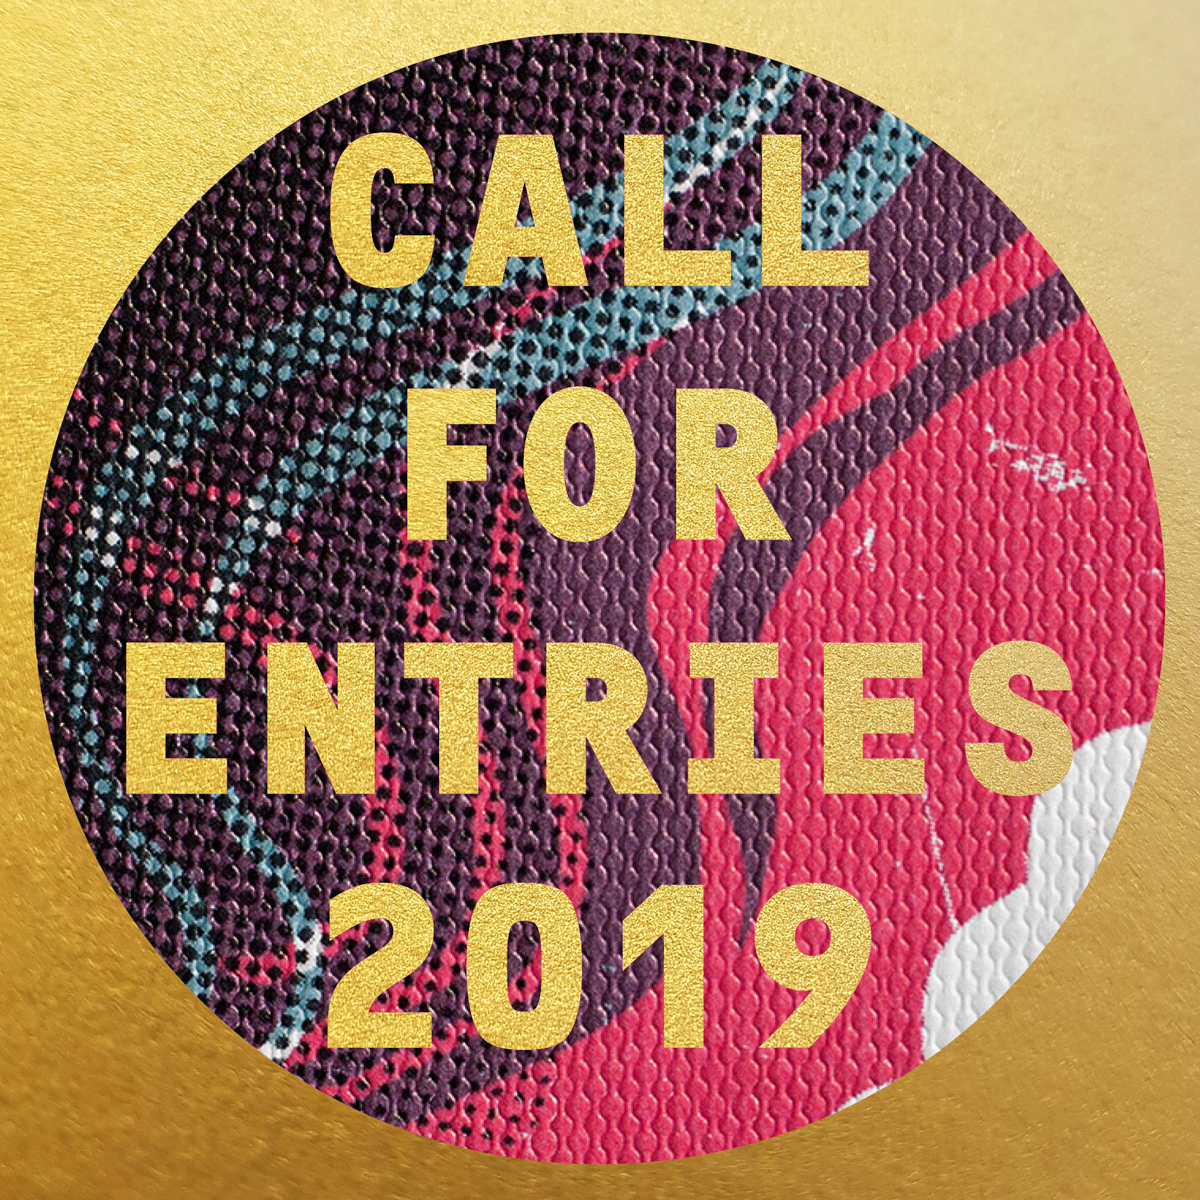 Call-for-Entries-2019-Stiftung-Buchkunst-Slanted